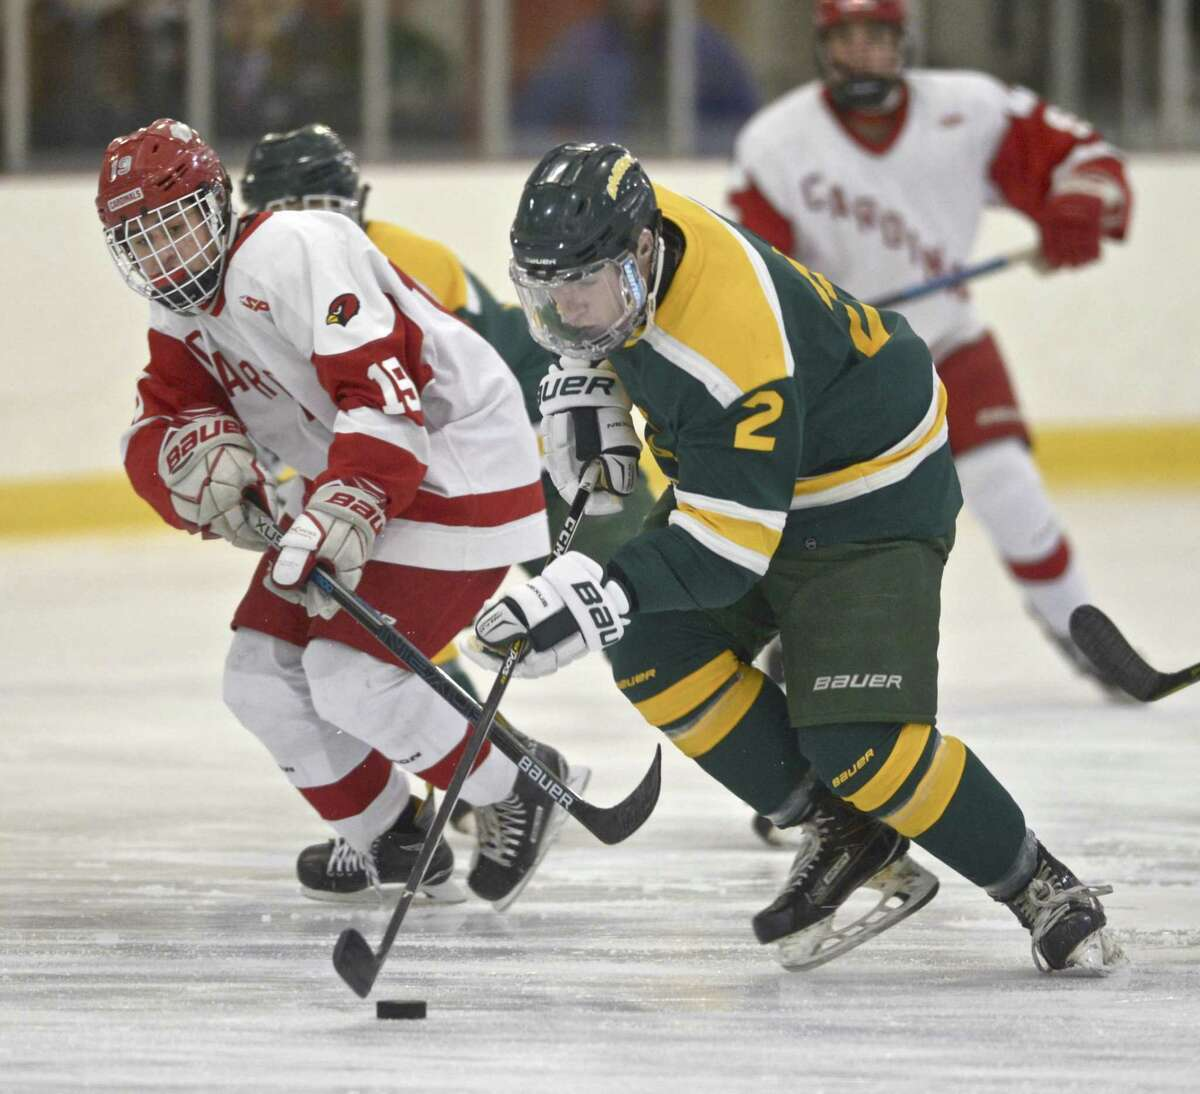 Hamden's Michael Gethings (2) moves the puck while under pressure from Greenwich's Julian Ribushofski on Jan 2.